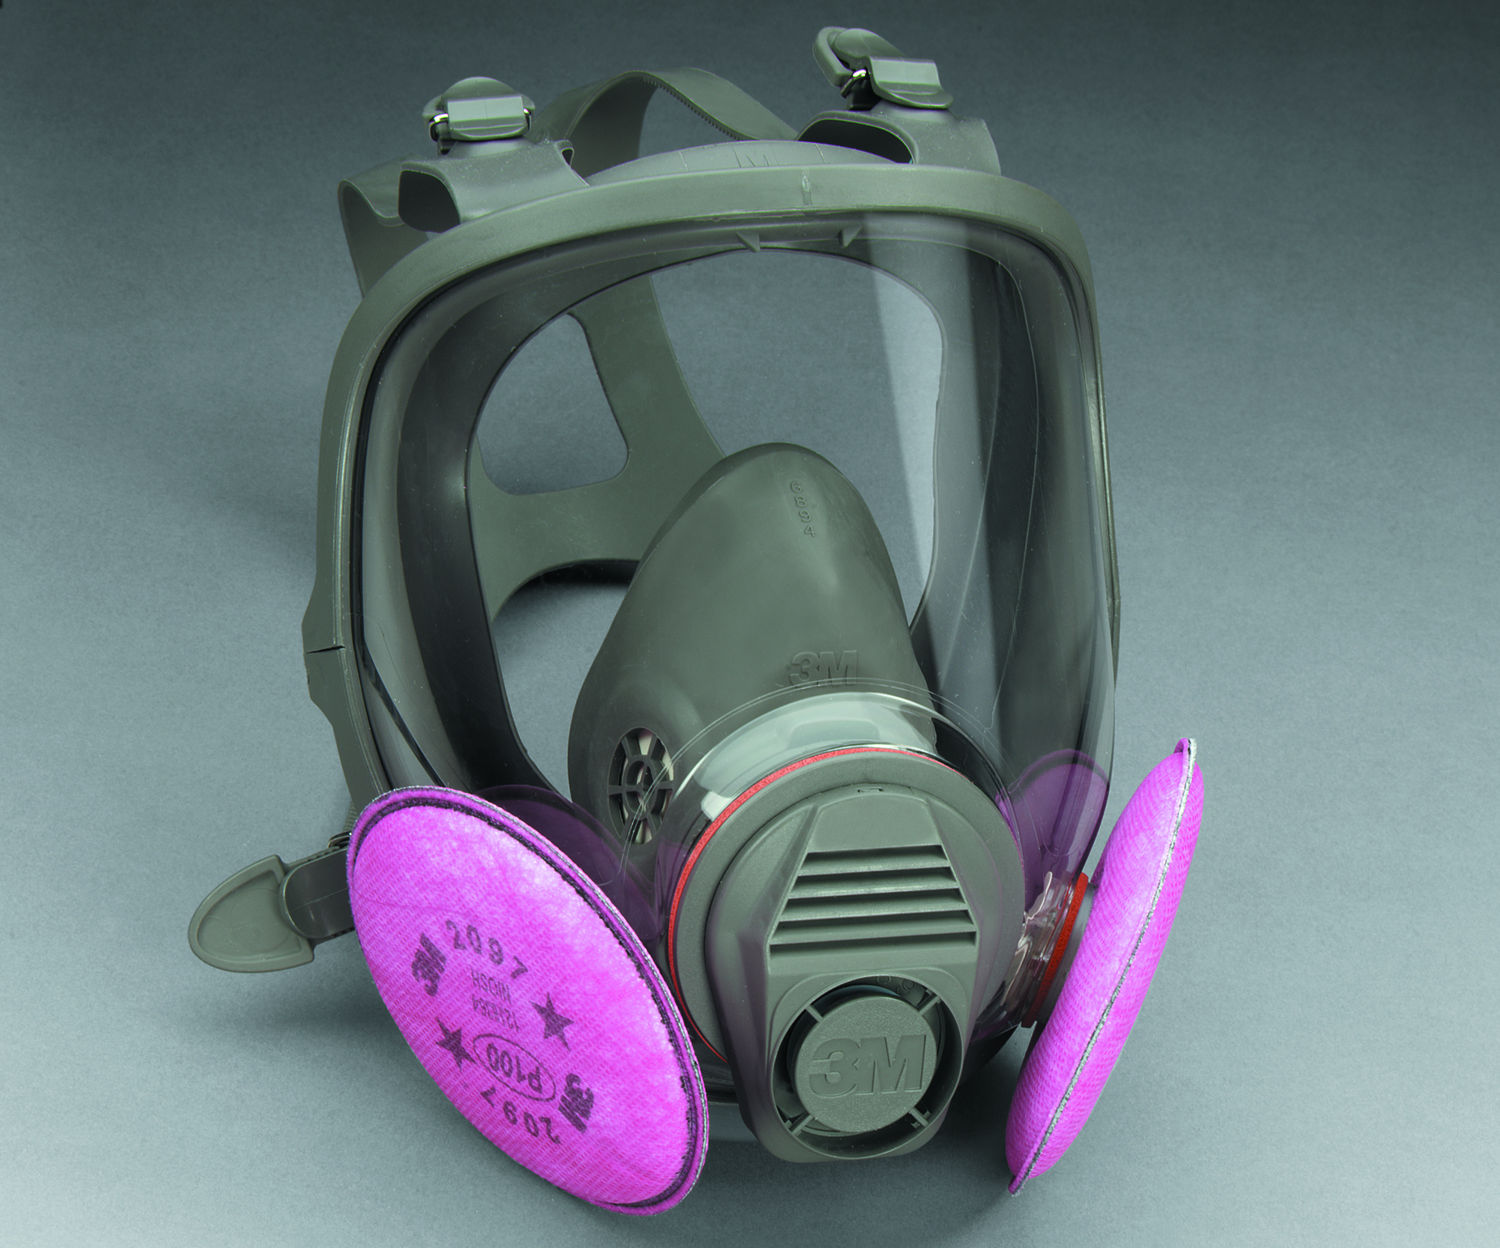 3m-full-facepiece-respirator Job A Full Form on